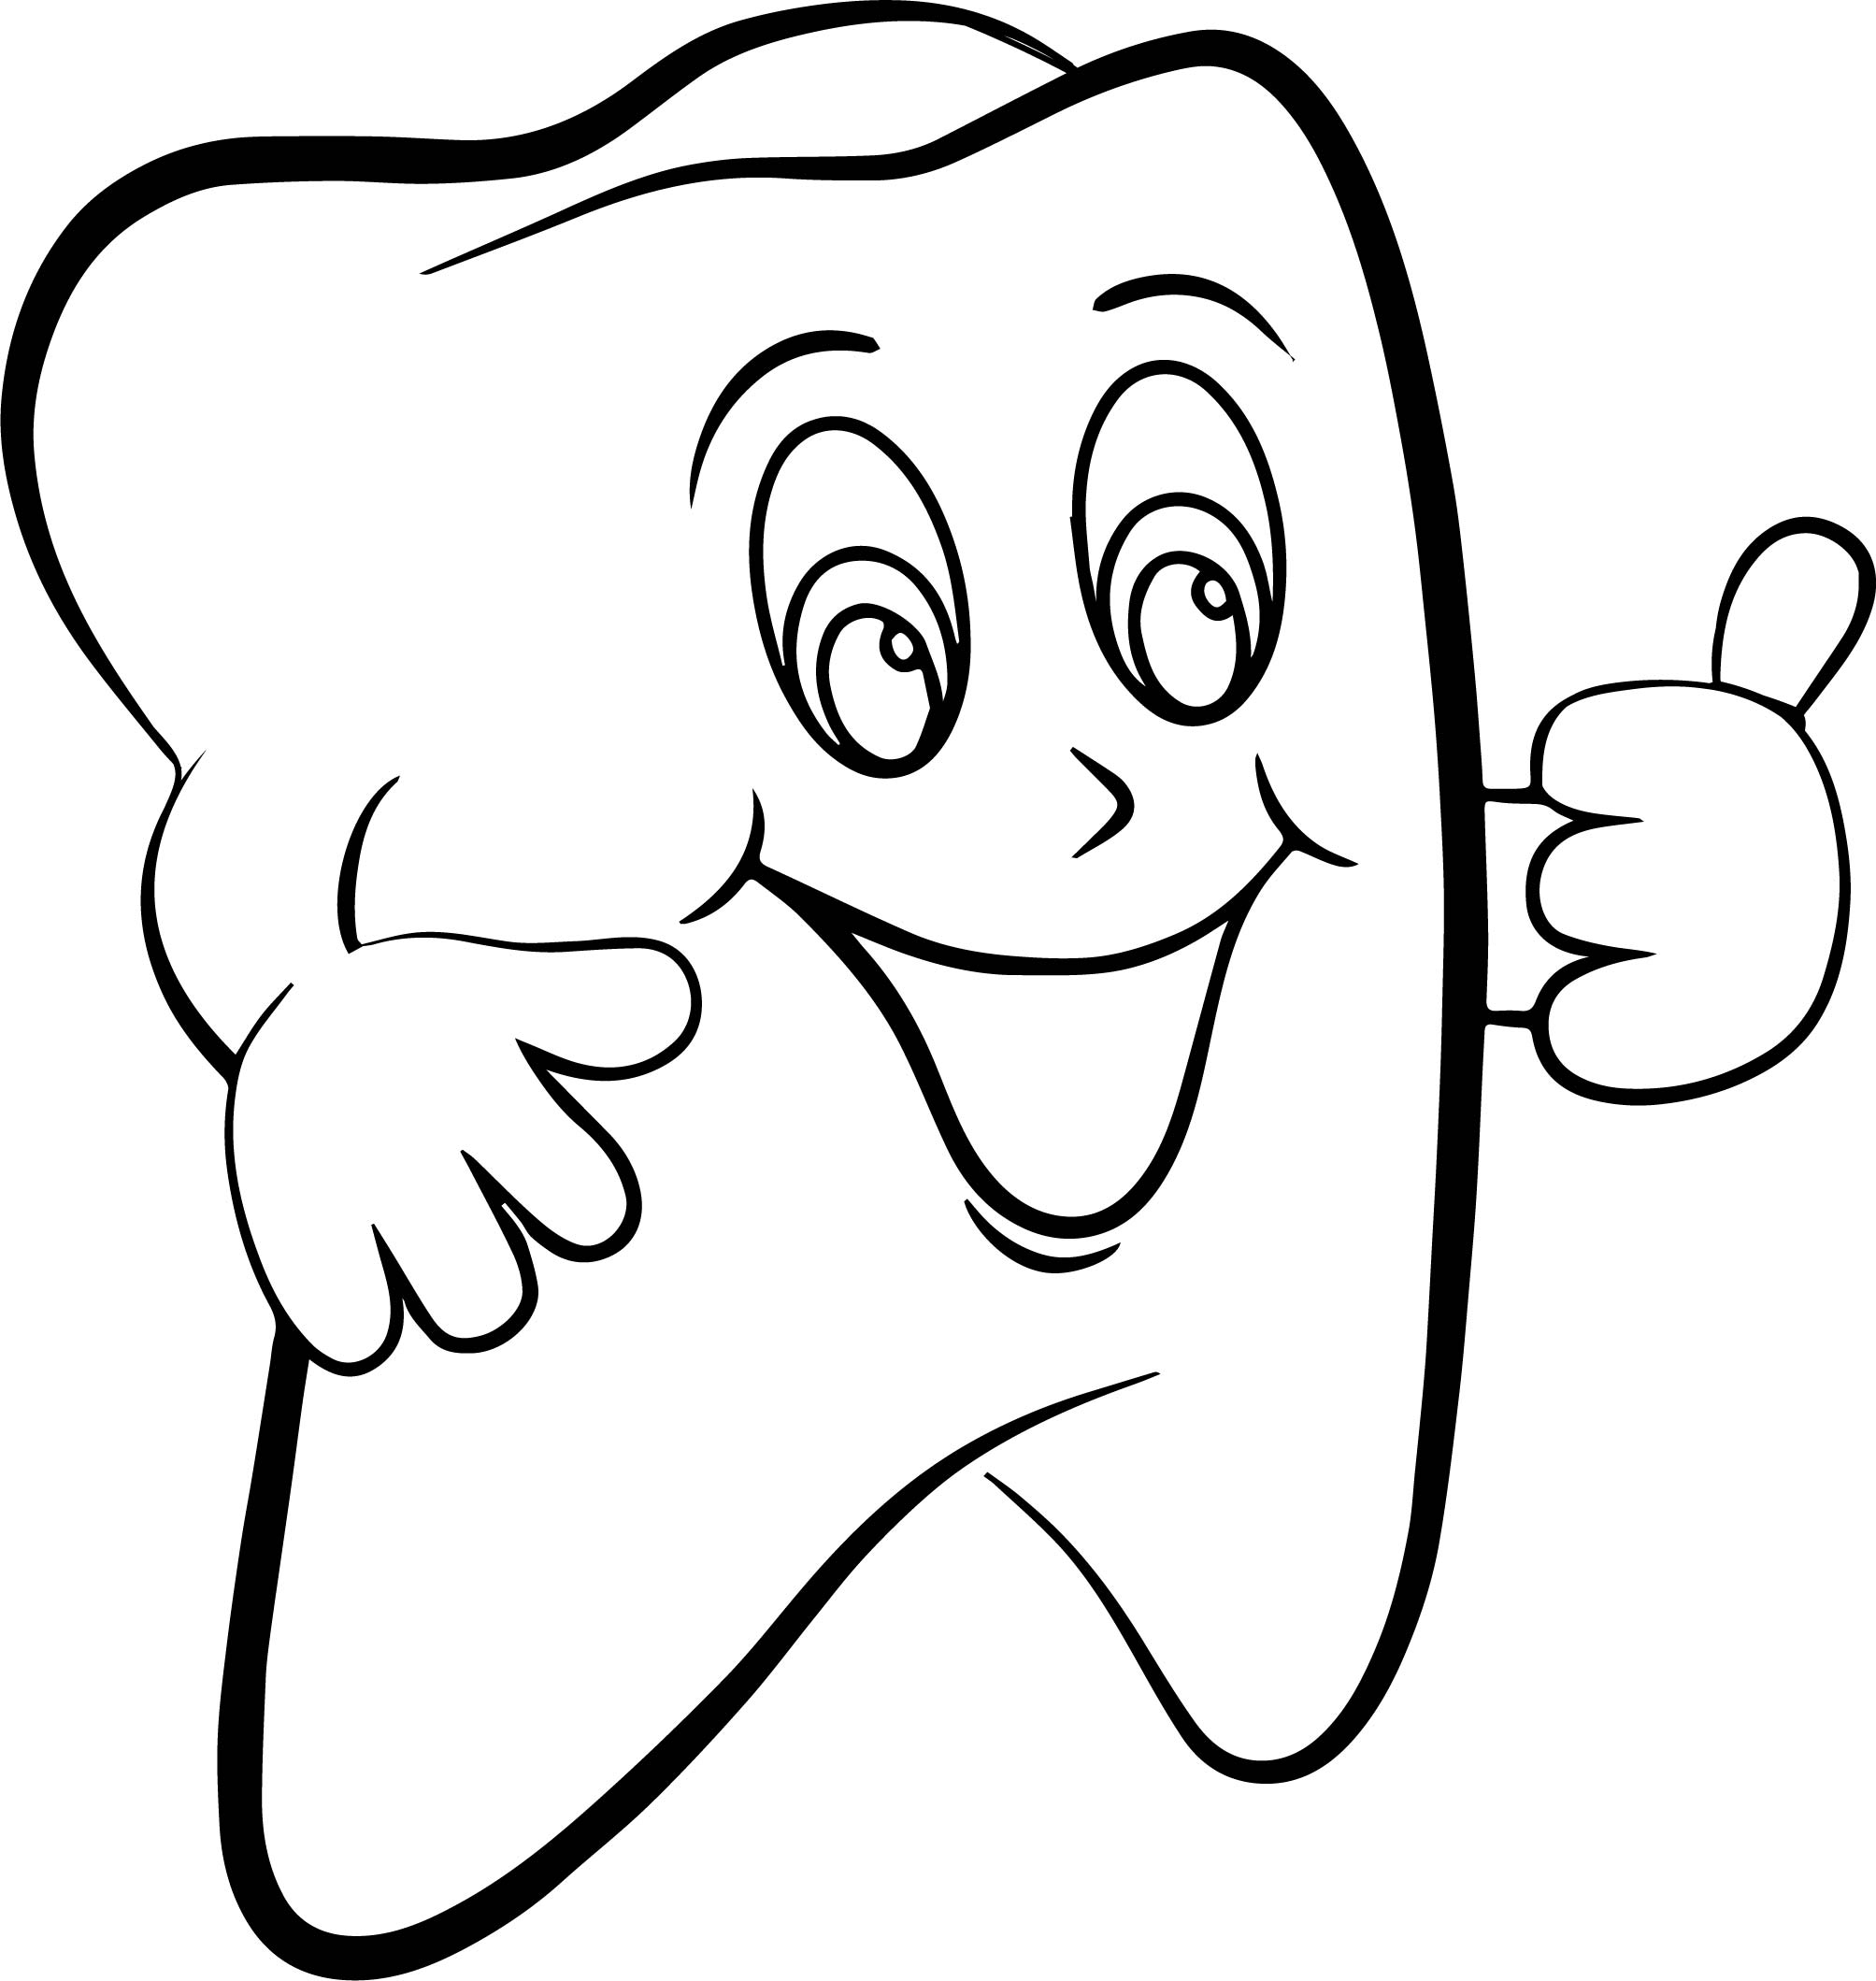 tooth dental coloring pages - photo#10